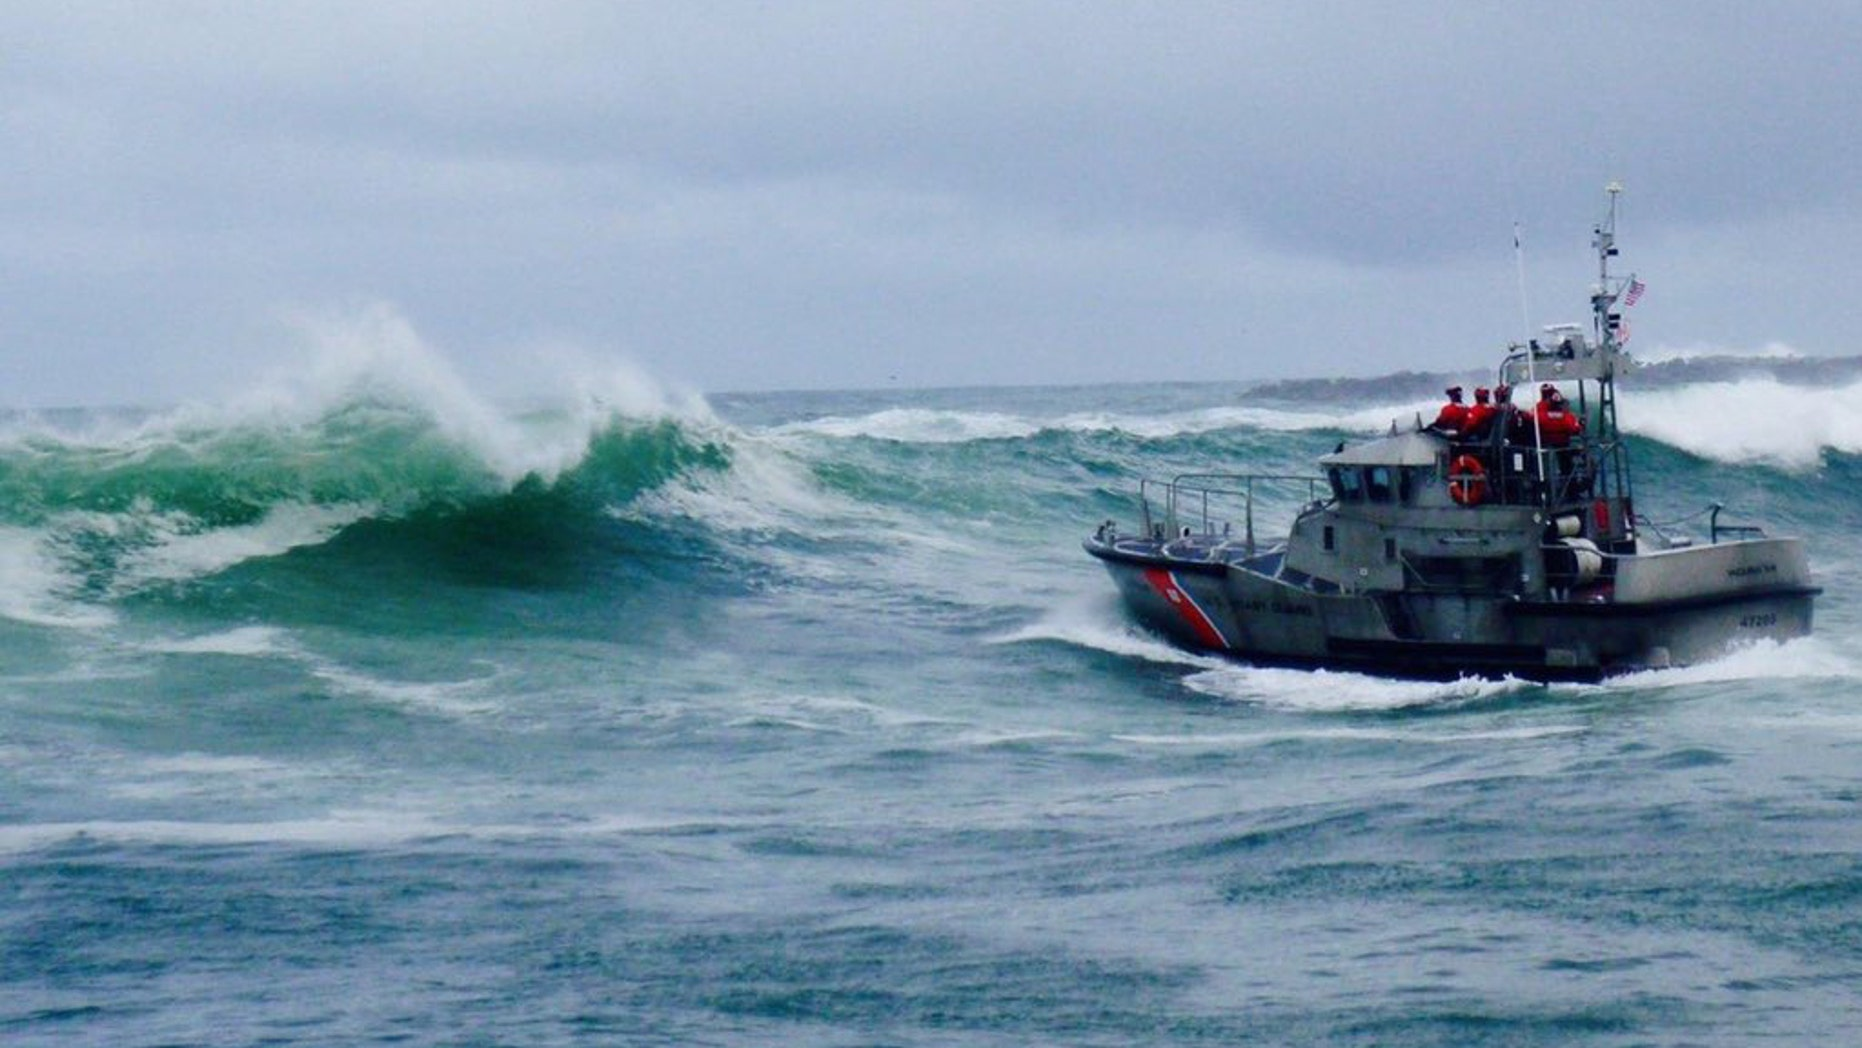 Three people aboard the Mary B II were pronounced dead after their vessel capsized off the coast of Newport, Oregon on Tuesday, officials said.